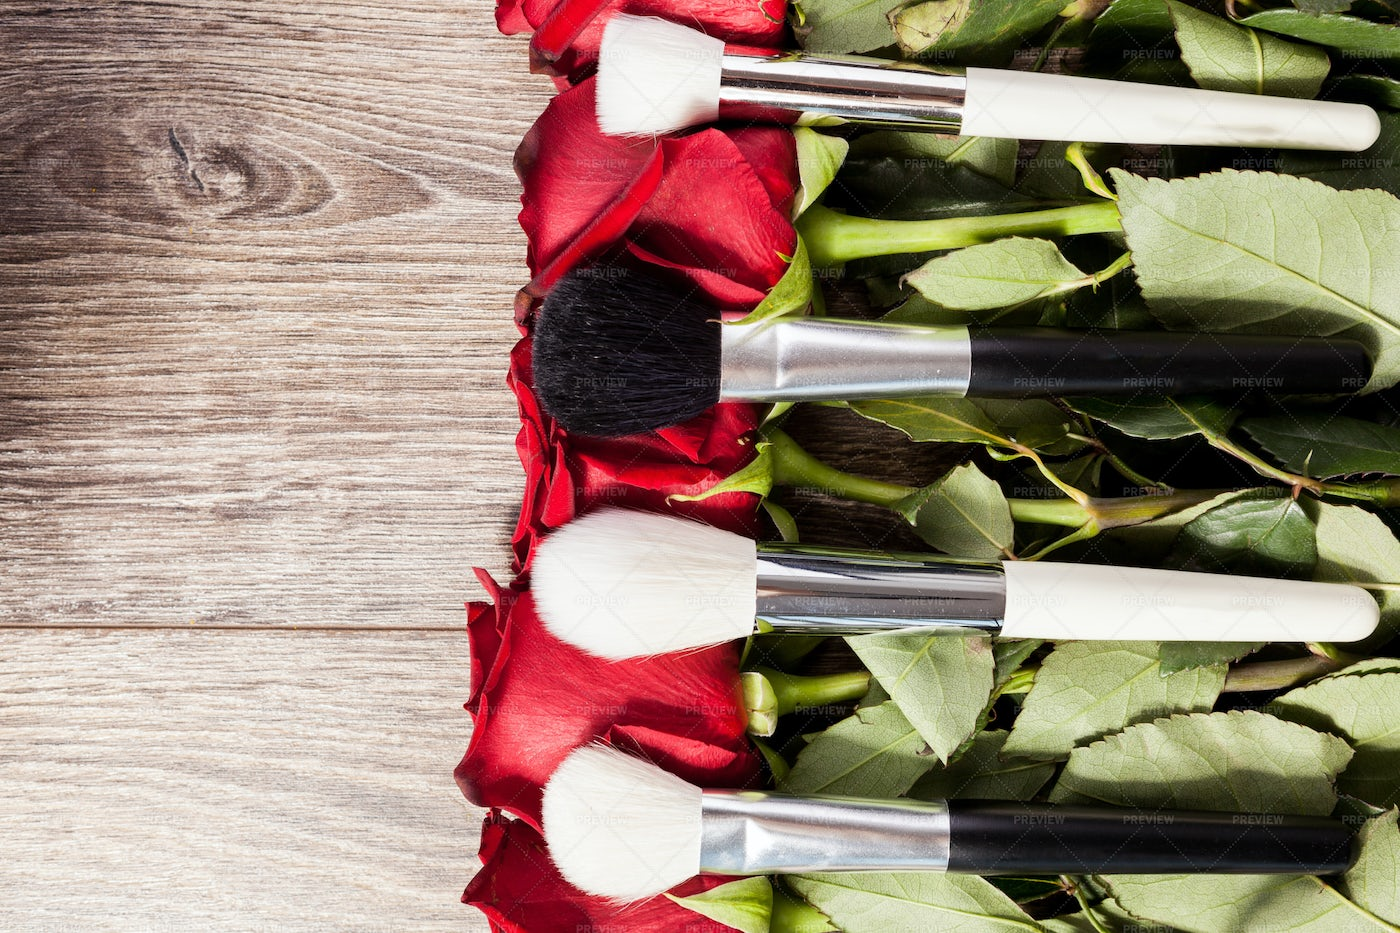 Makeup Brushes On Top Of Roses: Stock Photos